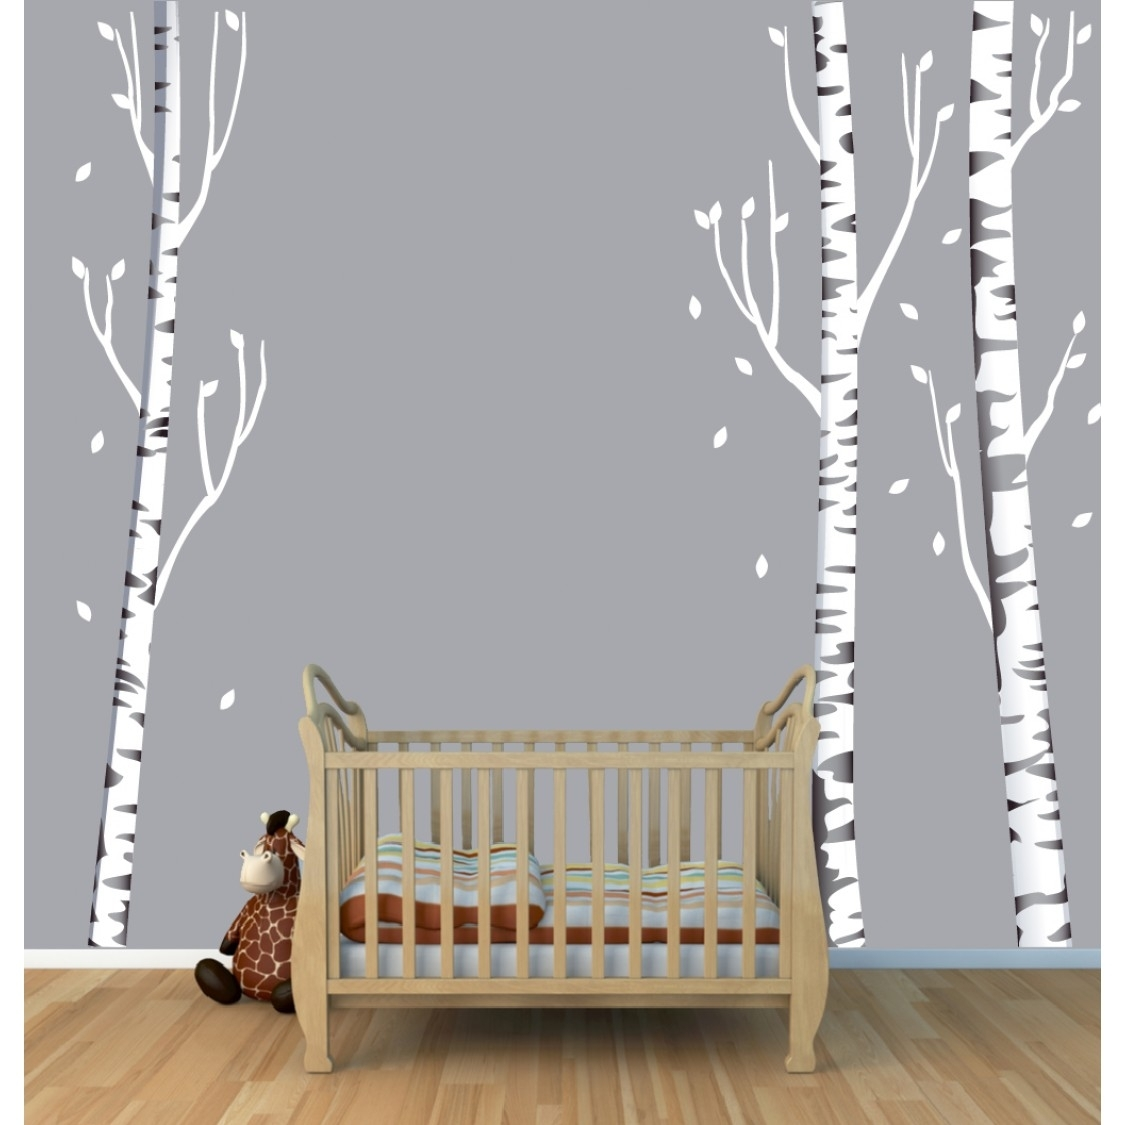 Wall Art Designs: Best Picks Birch Trees Wall Art For Awesome With Regard To Most Current Fabric Tree Wall Art (Gallery 8 of 15)